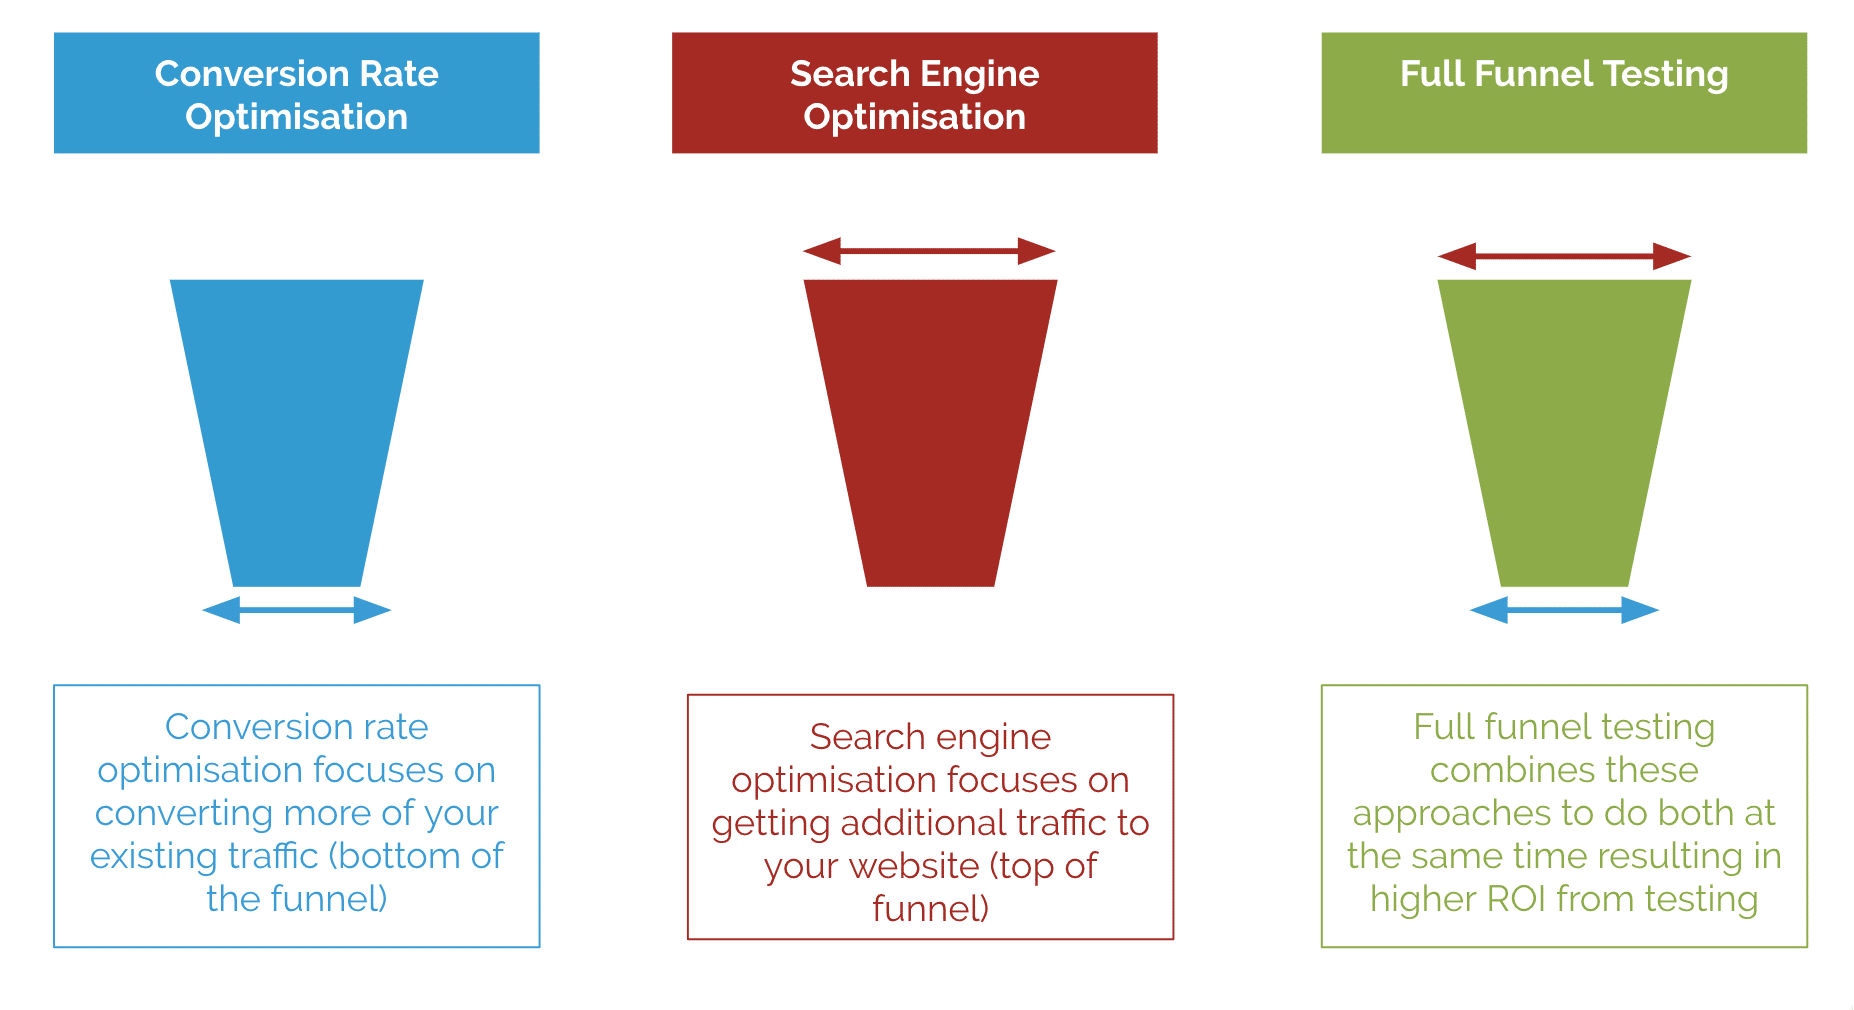 CRO, SEO and Full-Funnel testing